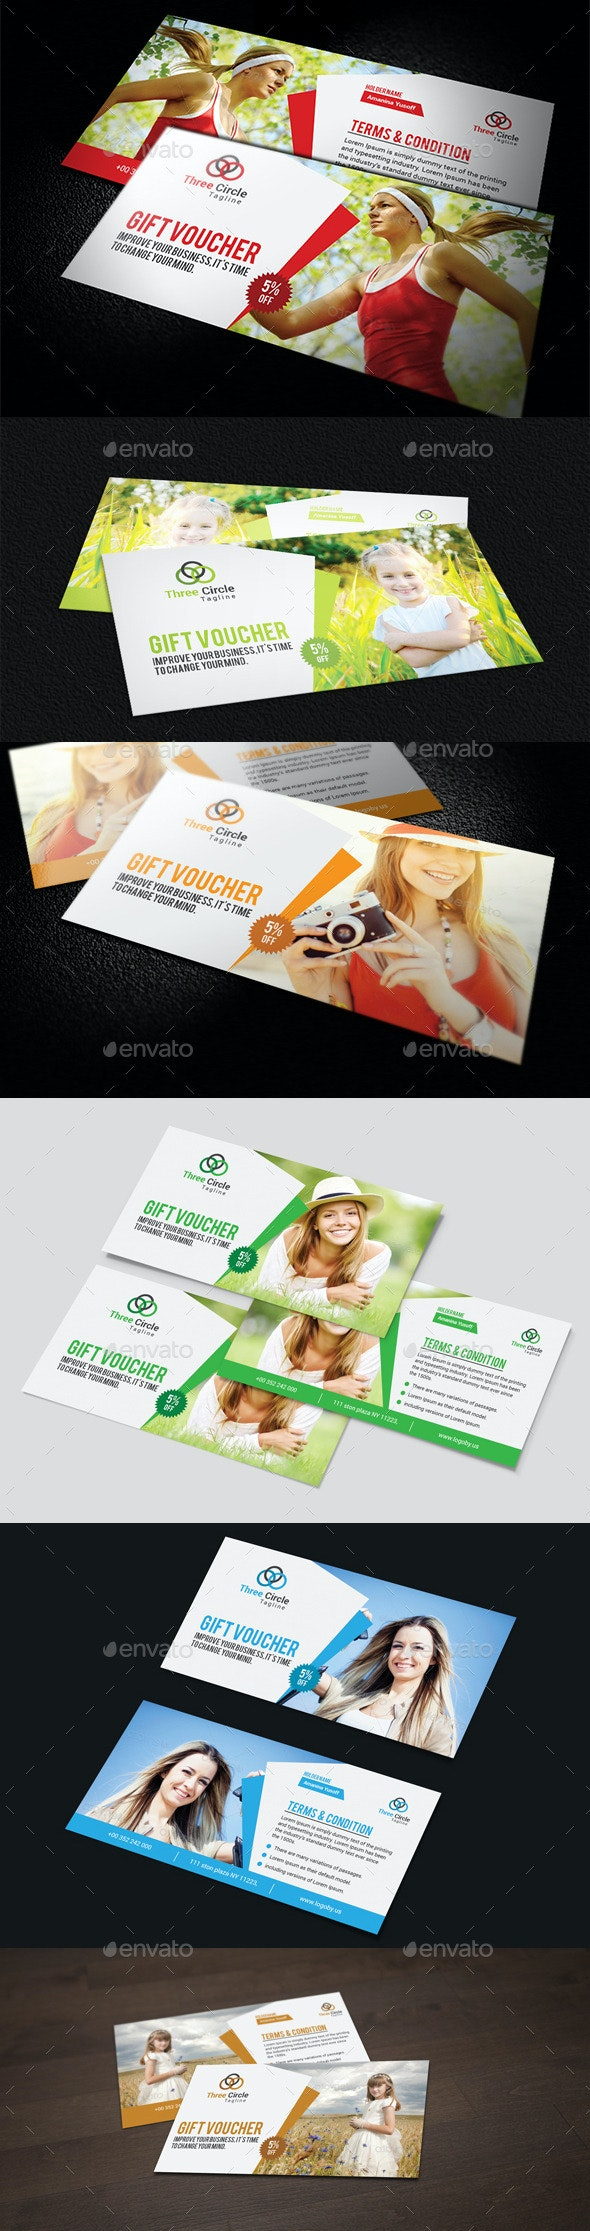 Gift Vouchers Template - Cards & Invites Print Templates